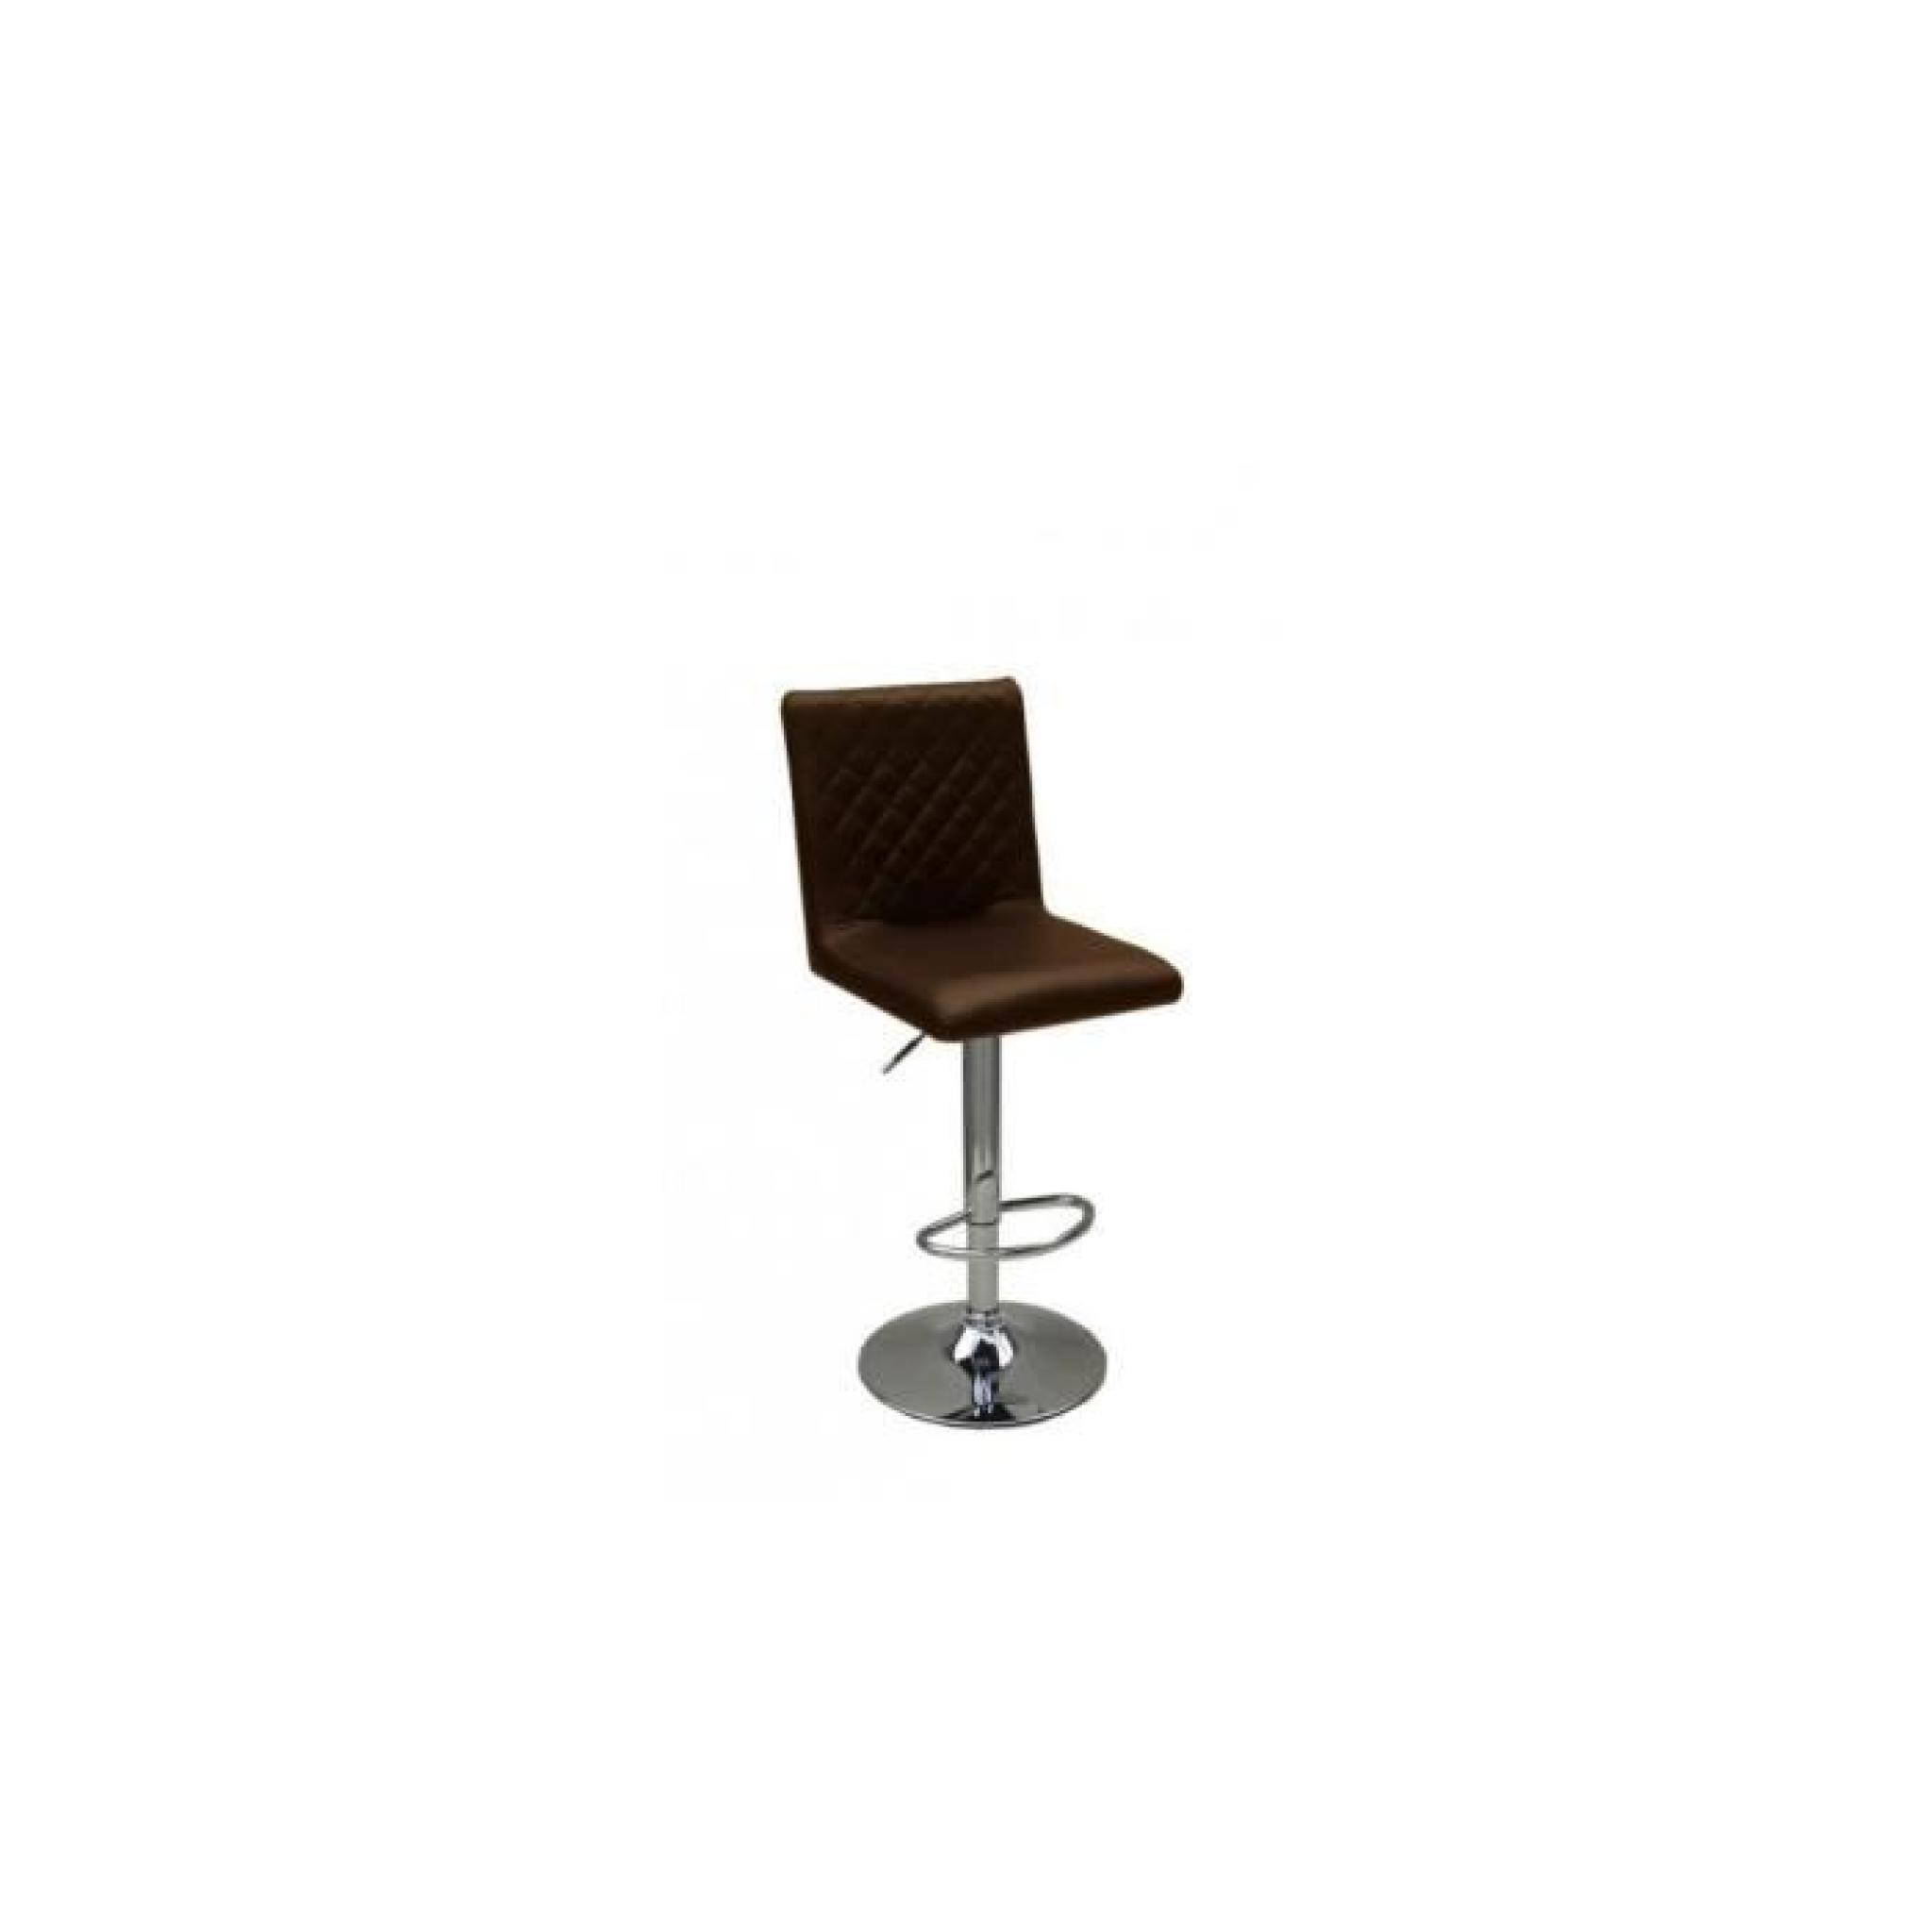 justhome tabouret de bar hc 1145 couleur chocolat. Black Bedroom Furniture Sets. Home Design Ideas